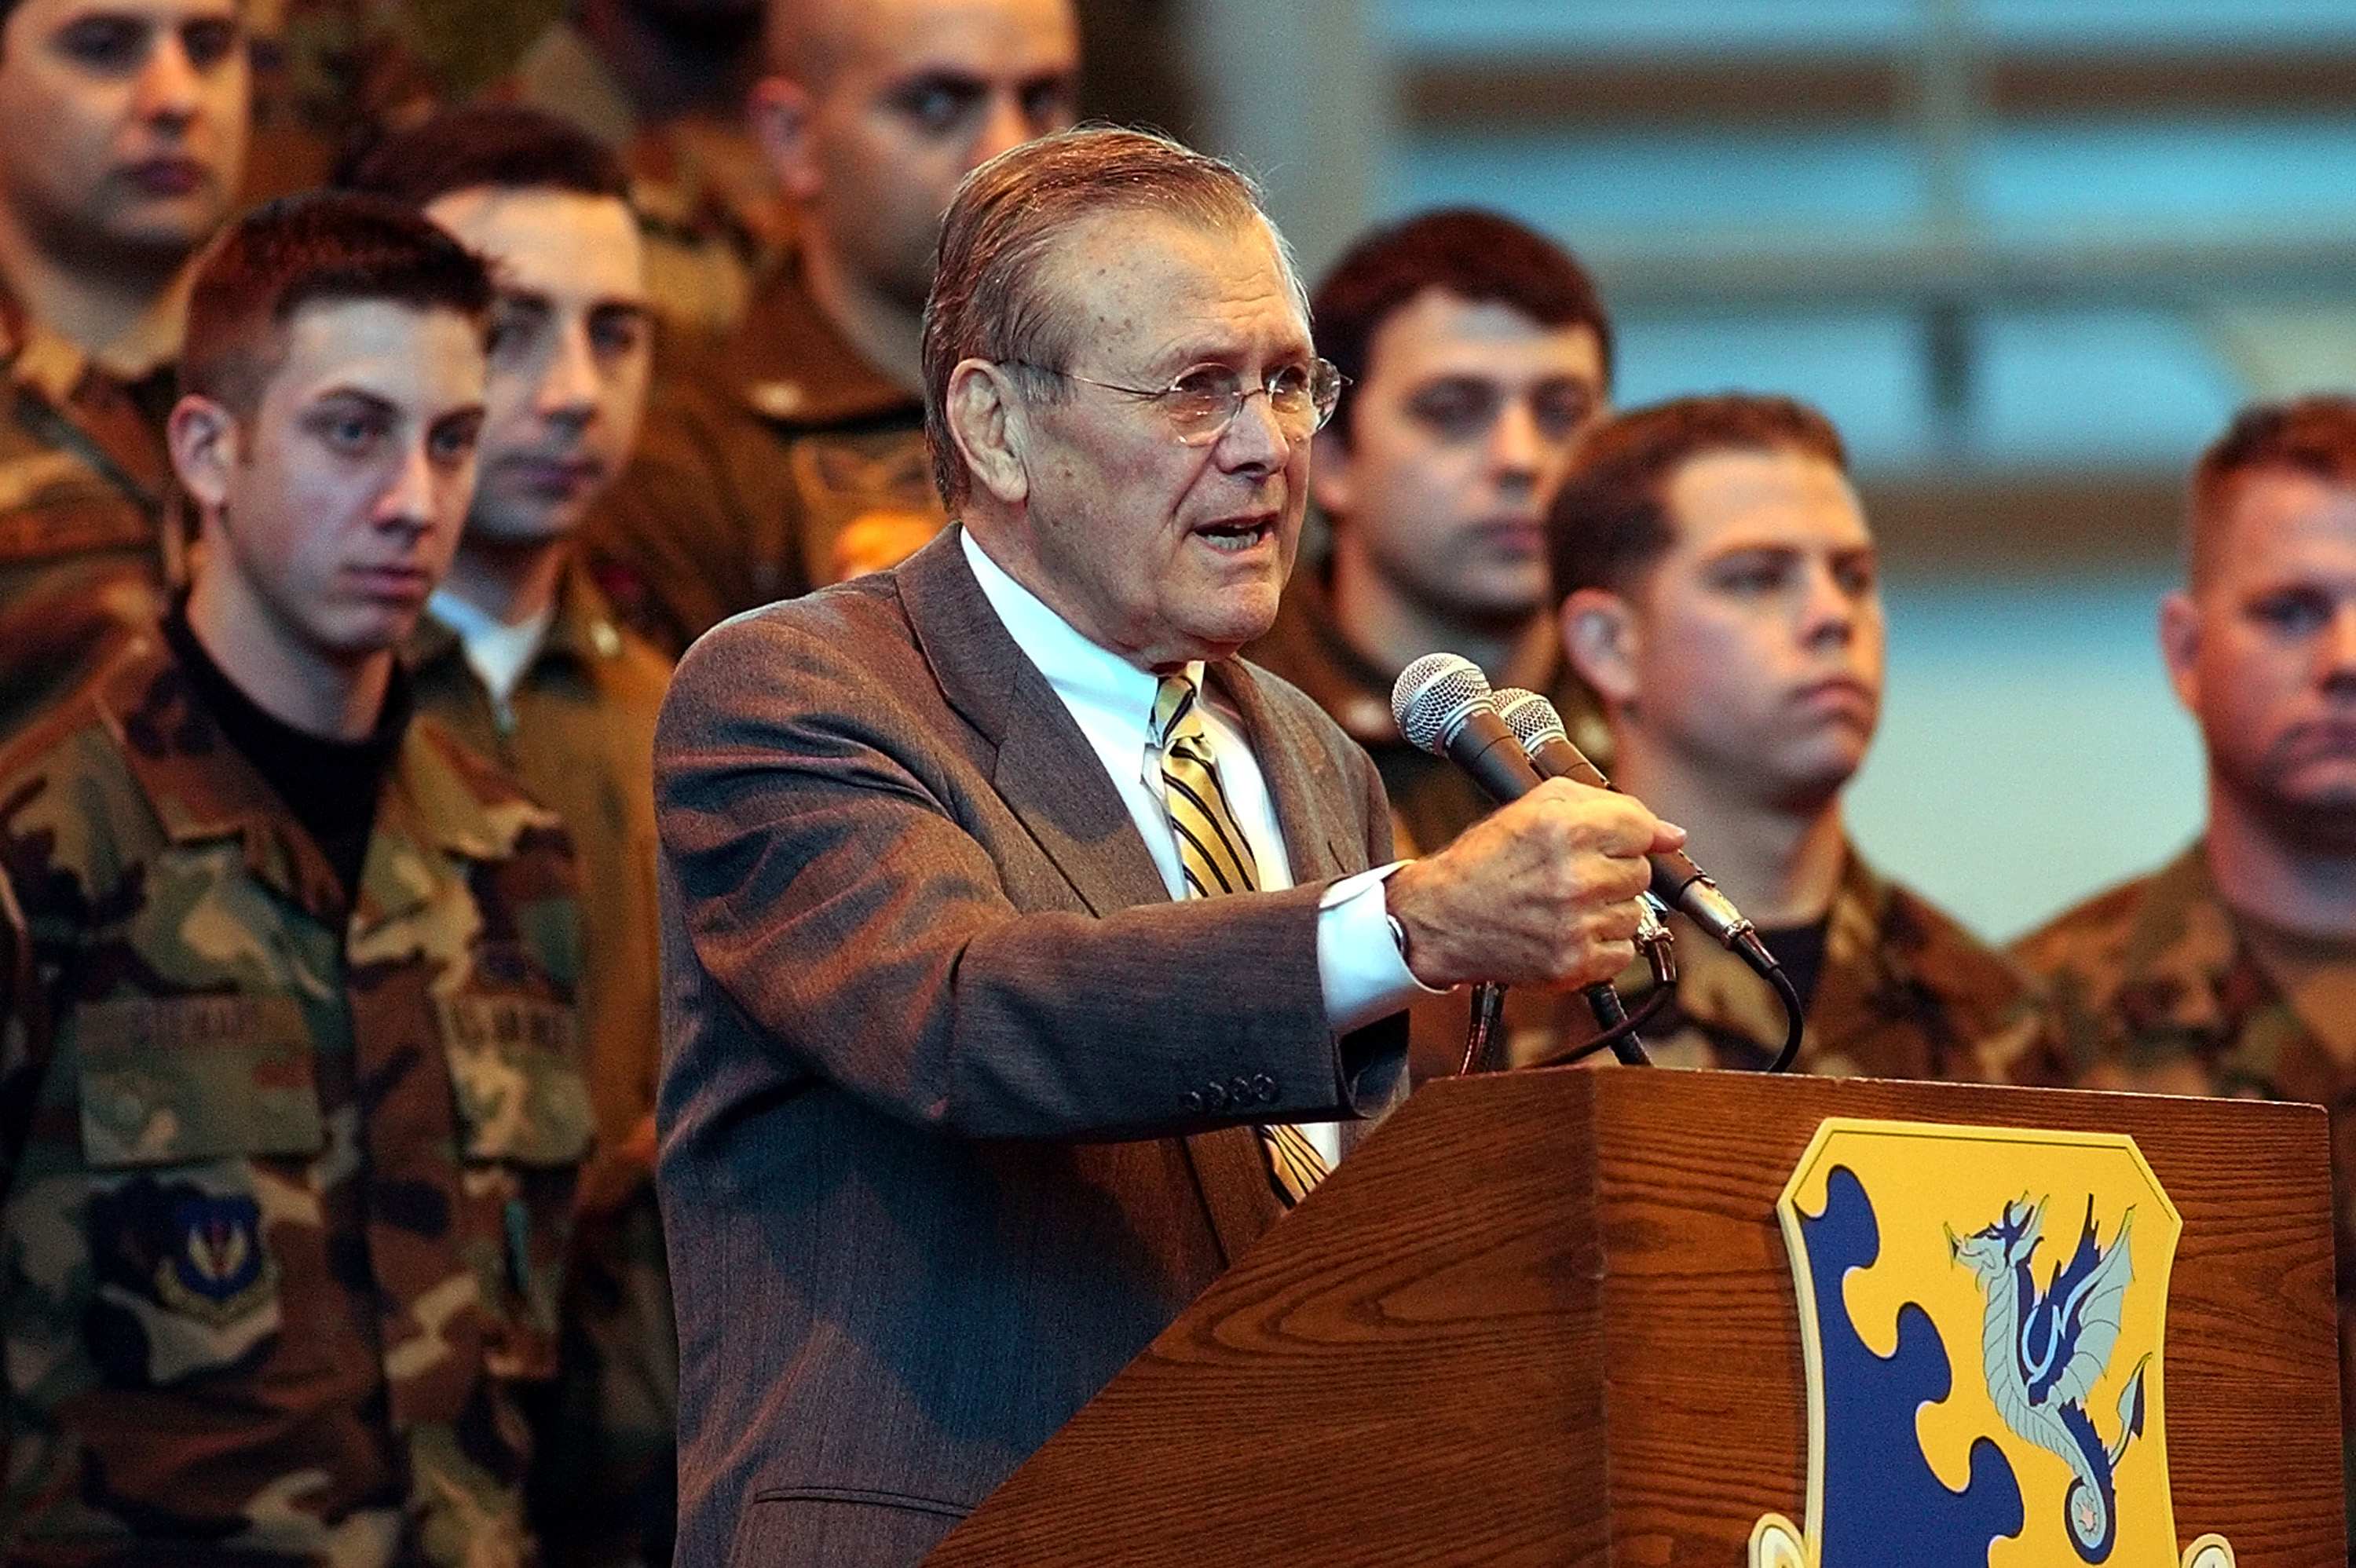 U.S. Defense Secretary Donald Rumsfeld speaks to troops in Italy.